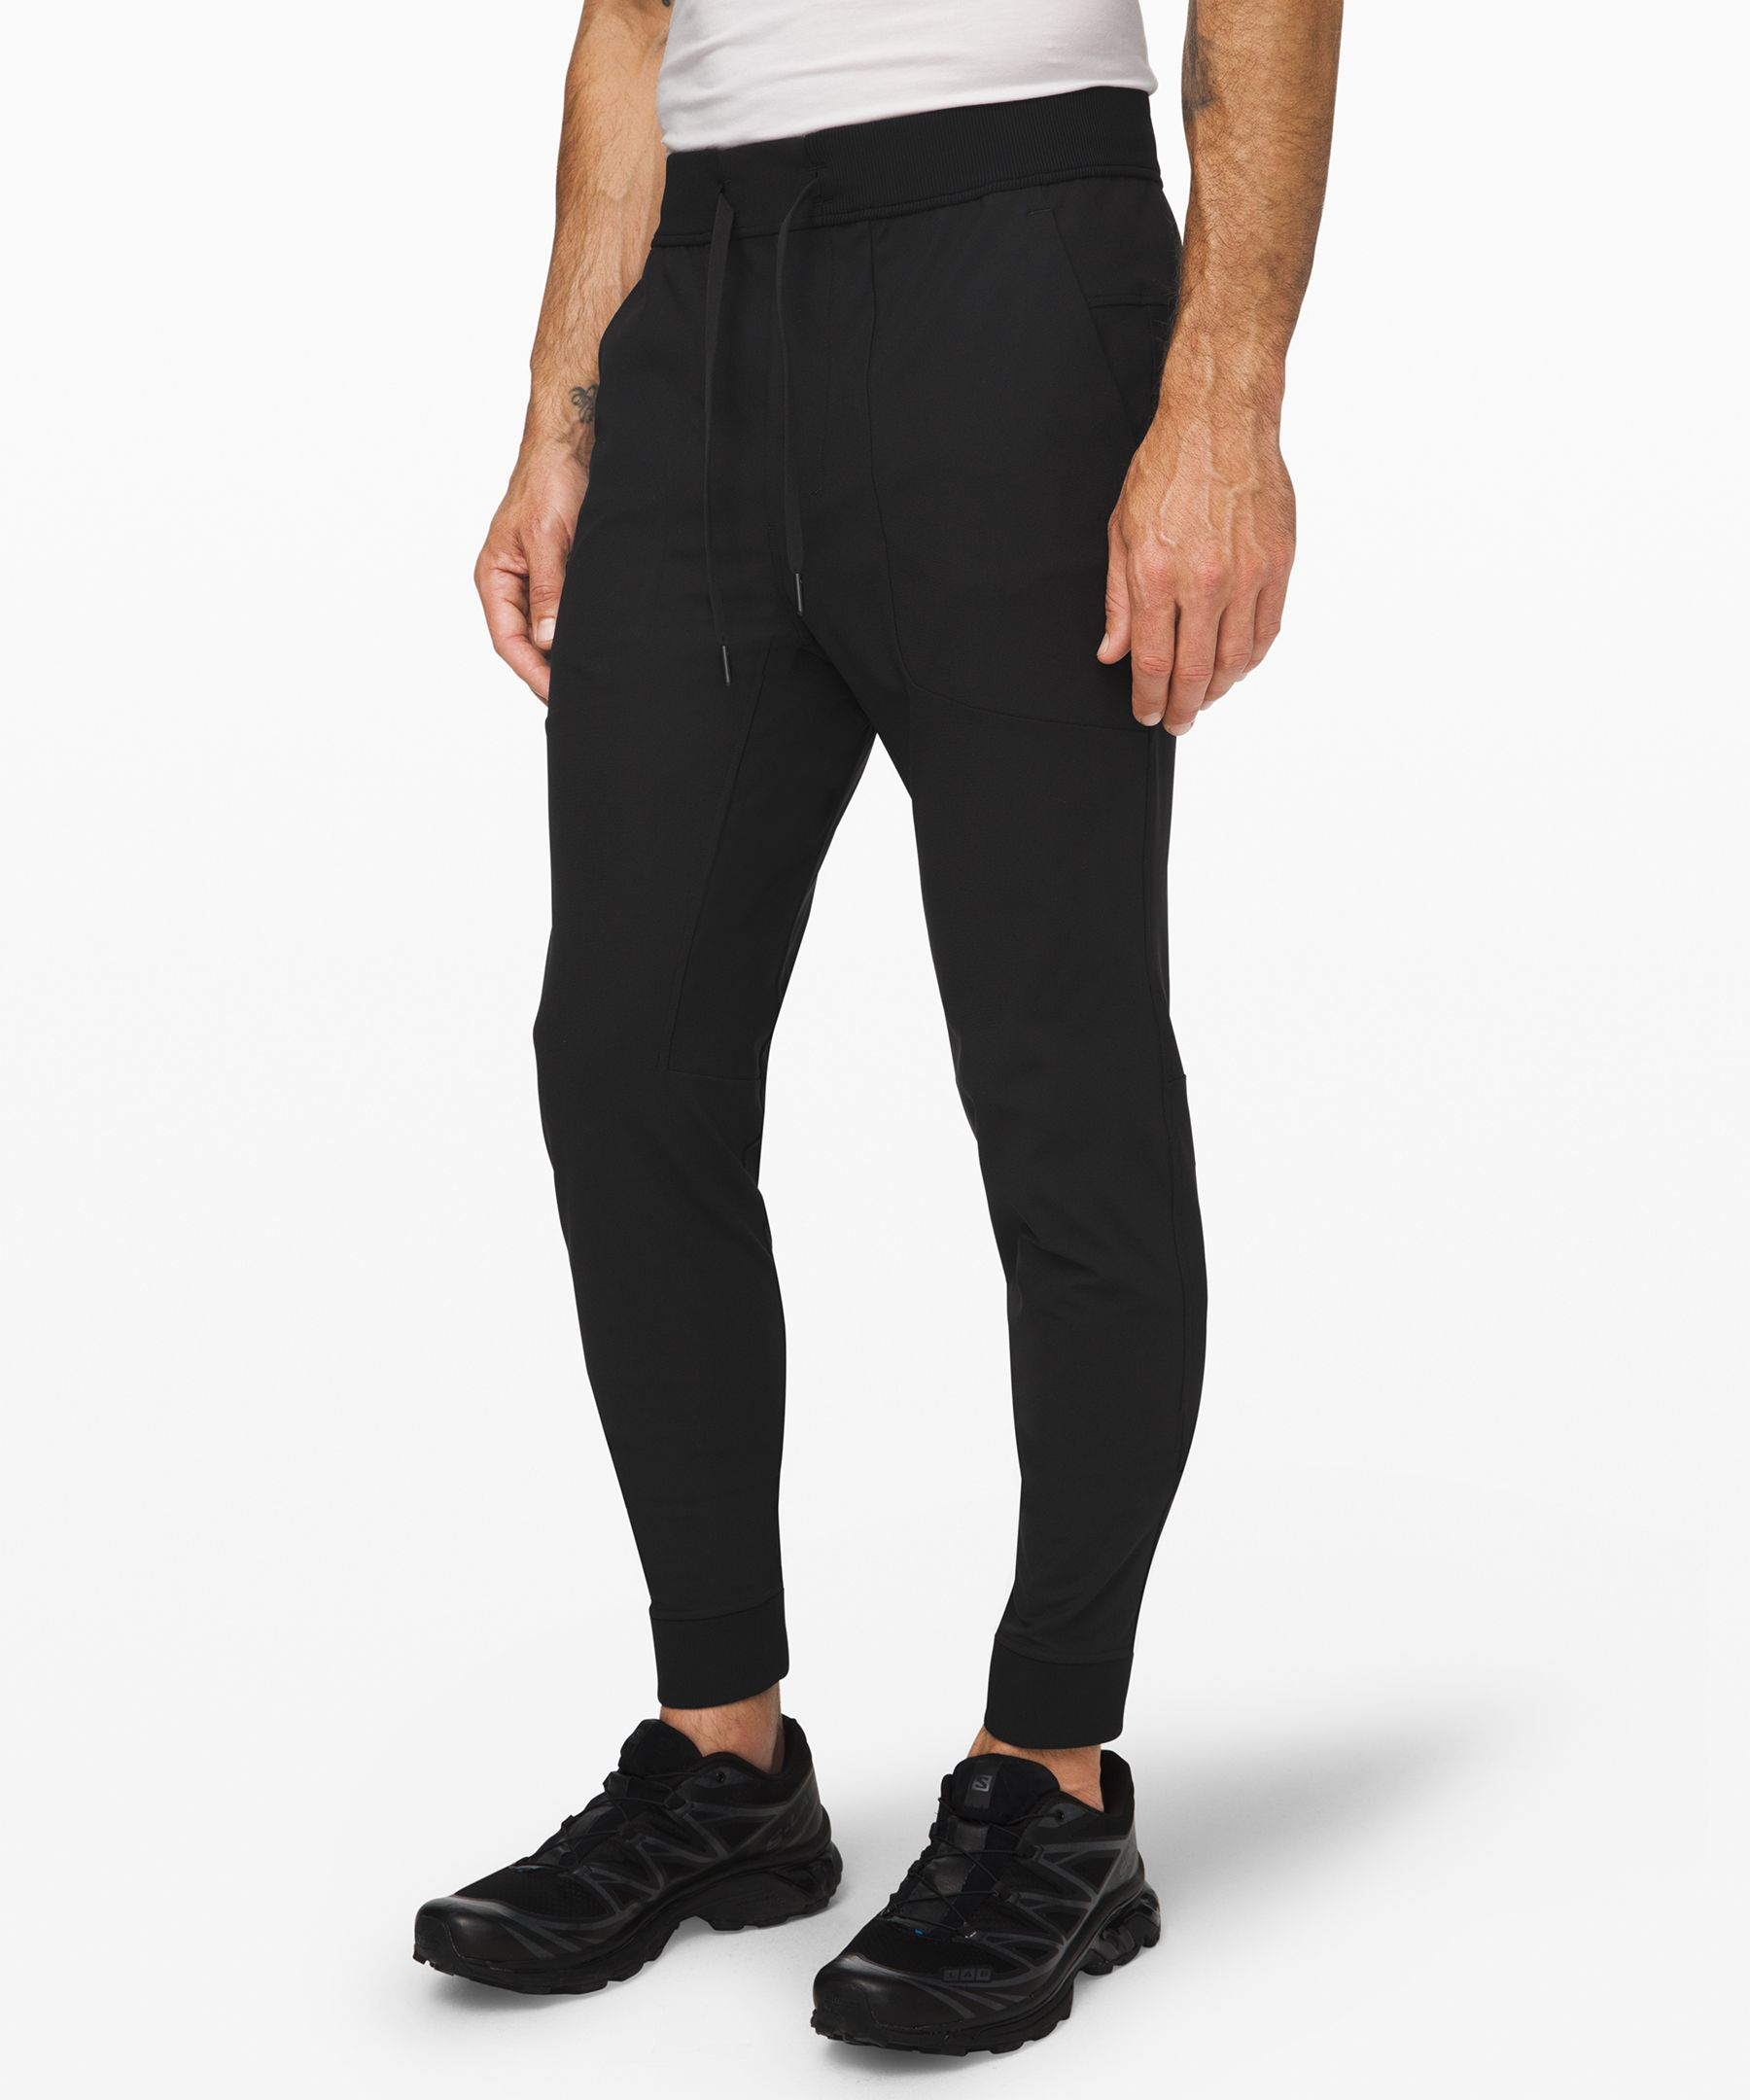 These skinny-fit joggers  feature our ABC (anti-ball  crushing) engineering and  four-way stretch Warpstreme™  fabric, making them an obvious  choice for recreation or travel.